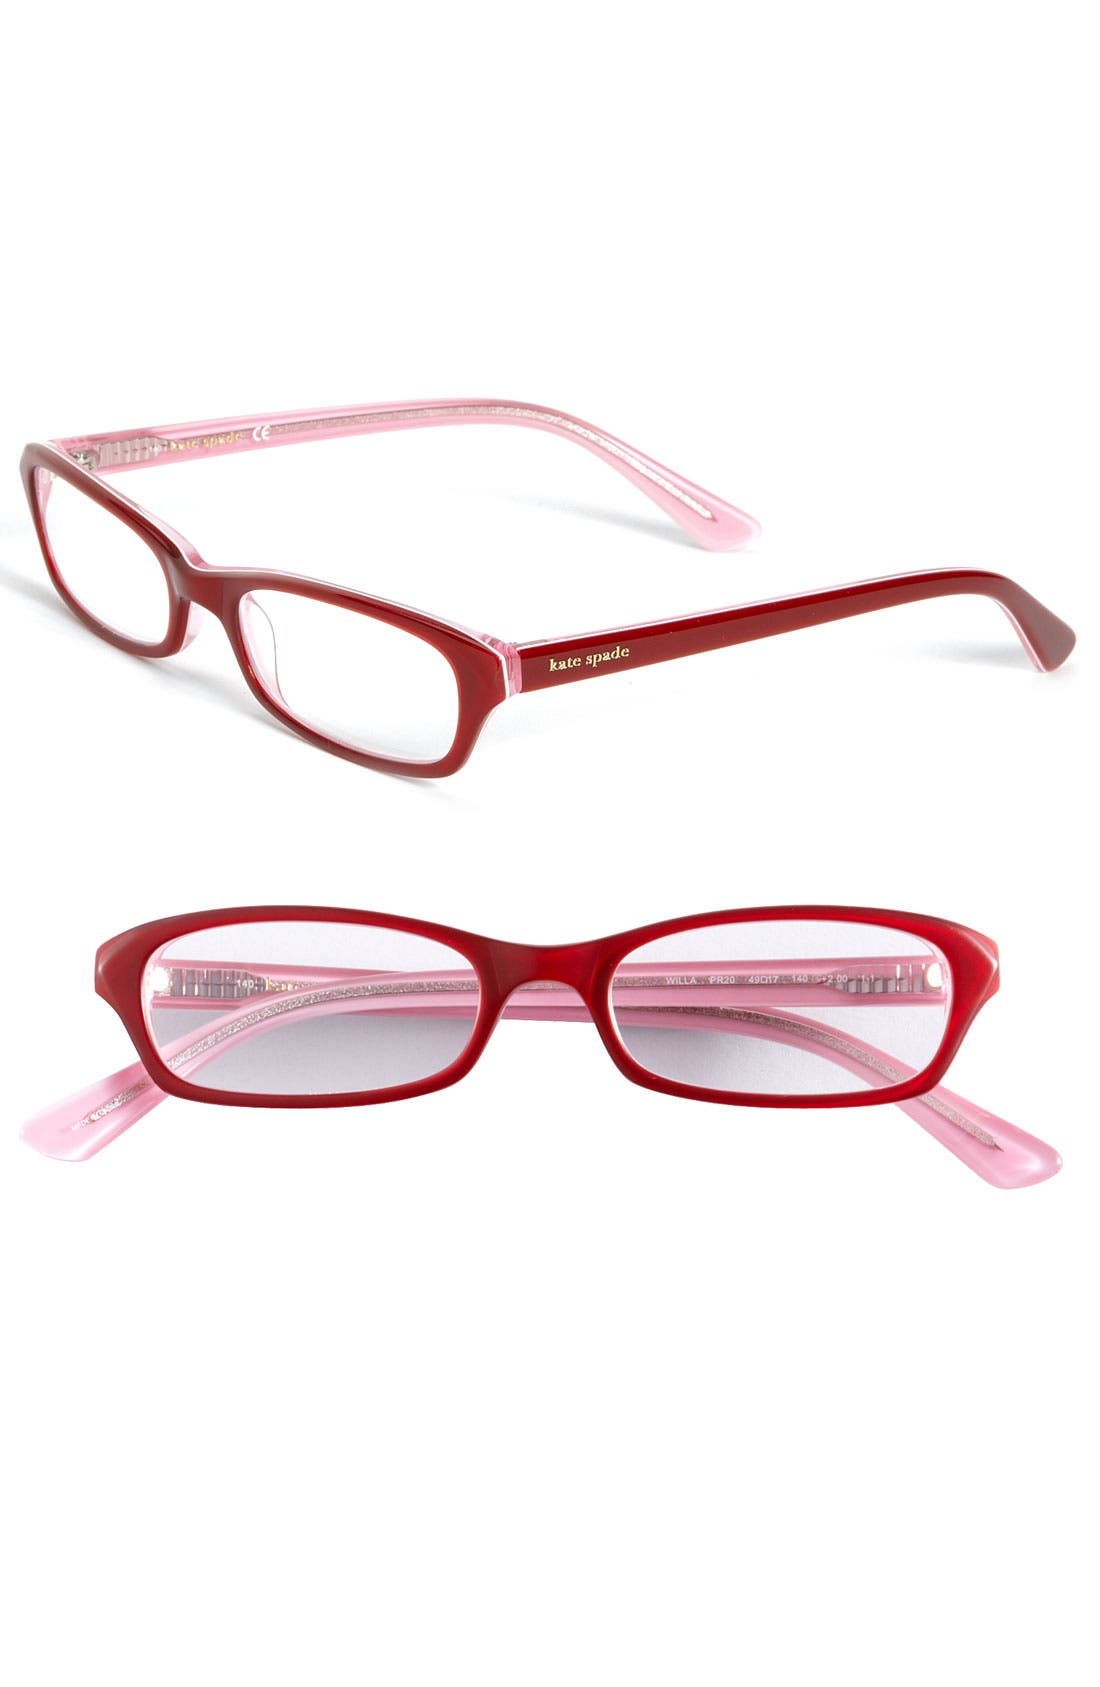 Alternate Image 1 Selected - kate spade new york 'willa' reading glasses